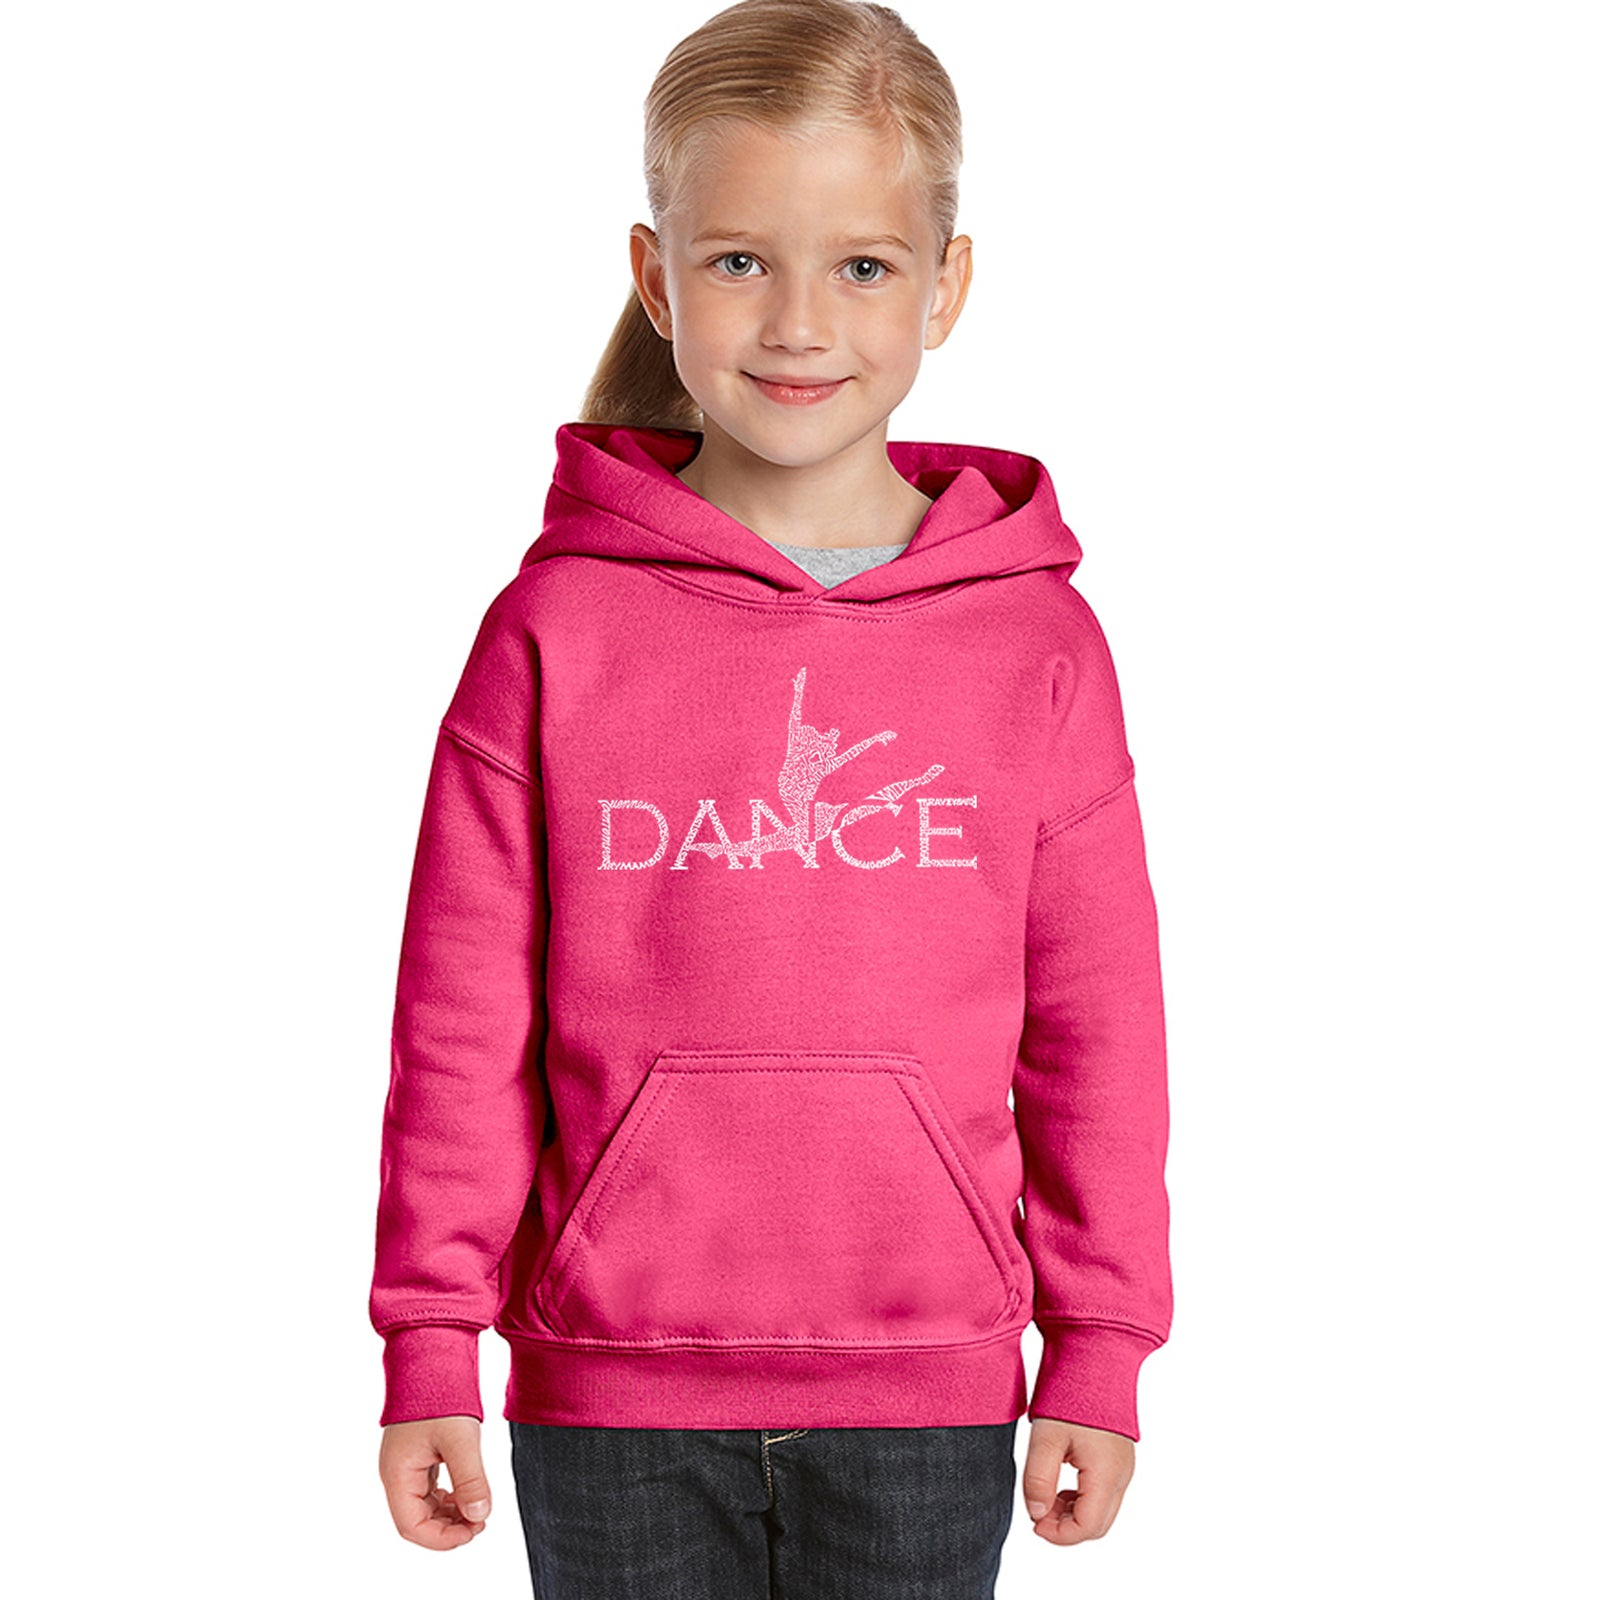 Girl's Hooded Sweatshirt - Dancer